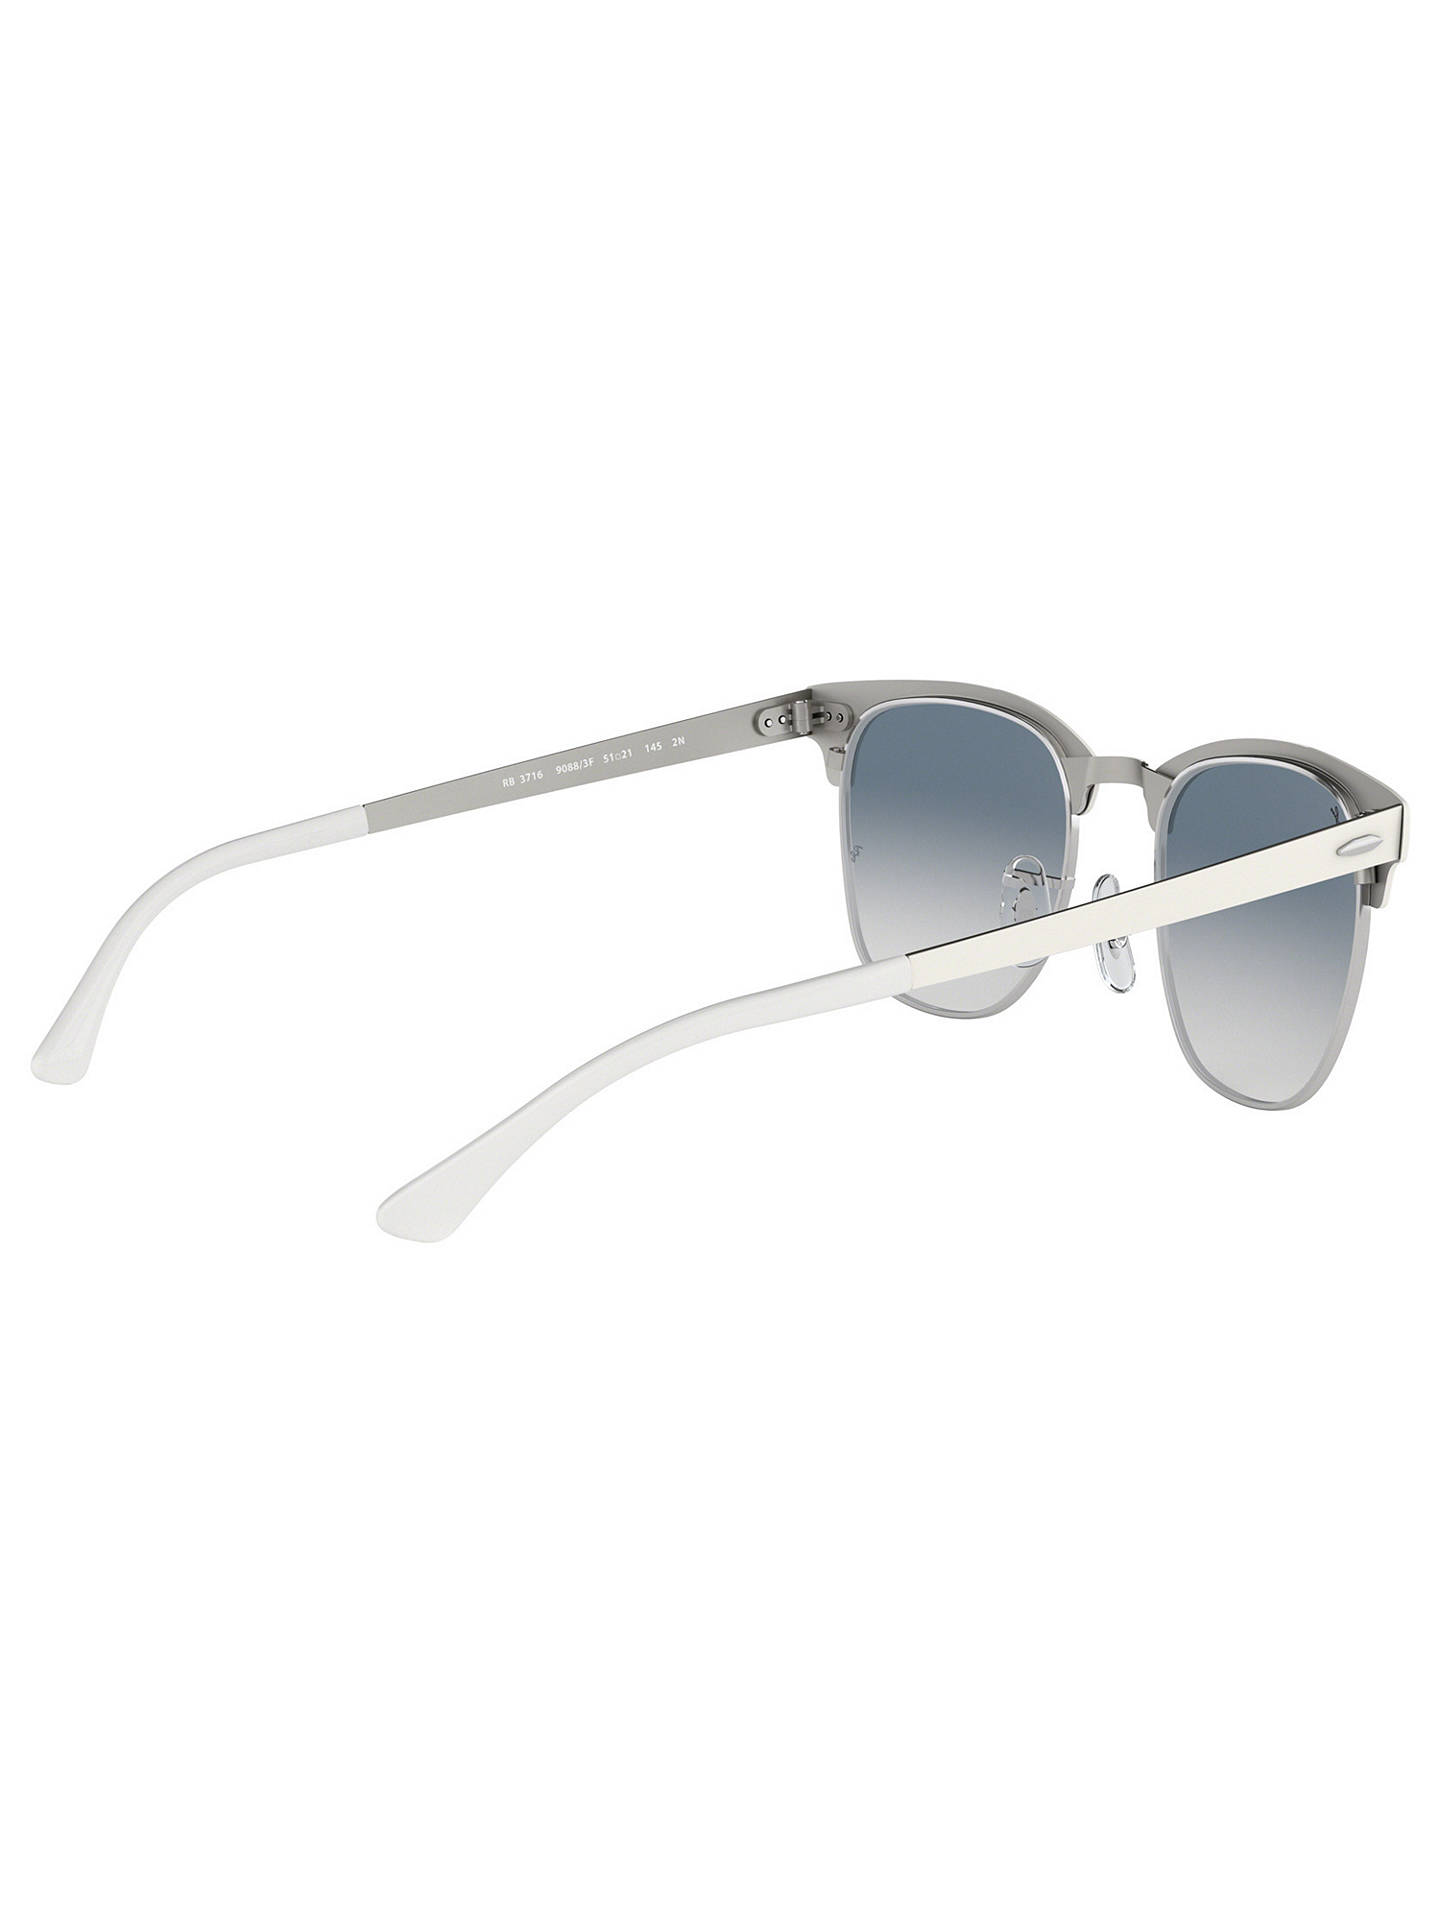 2404b8504f6 ... BuyRay-Ban RB3716 Polarised Unisex Gradient Square Sunglasses Online at  johnlewis.com ...